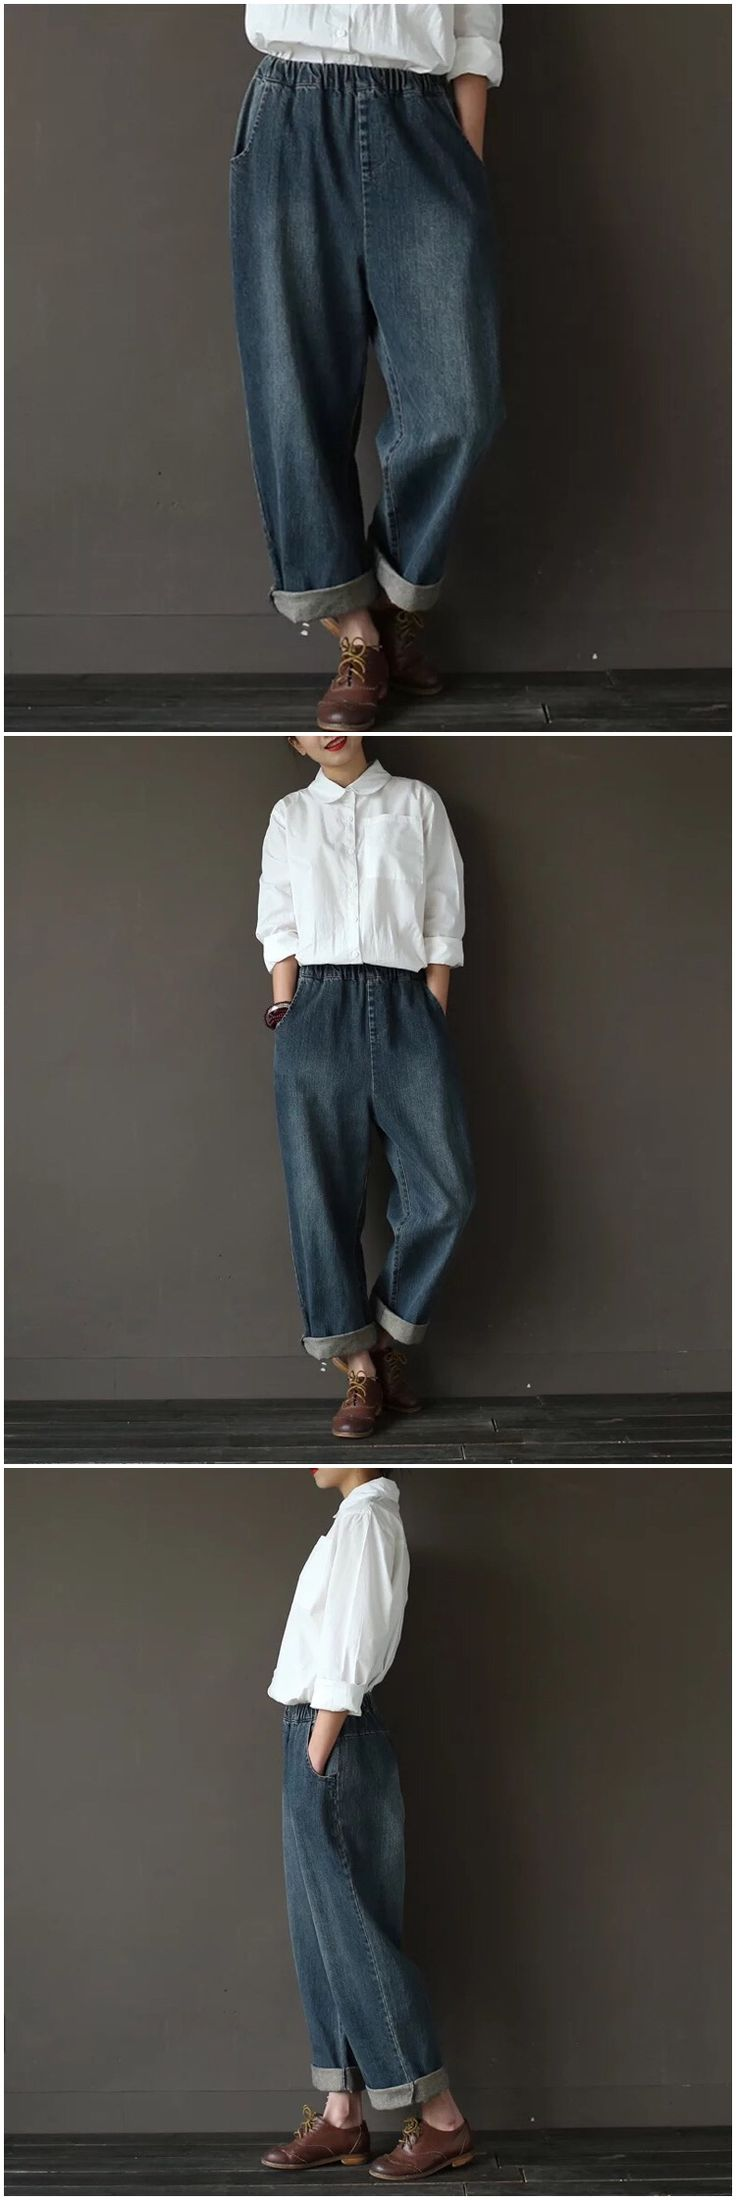 Vintage loose jeans women's trousers